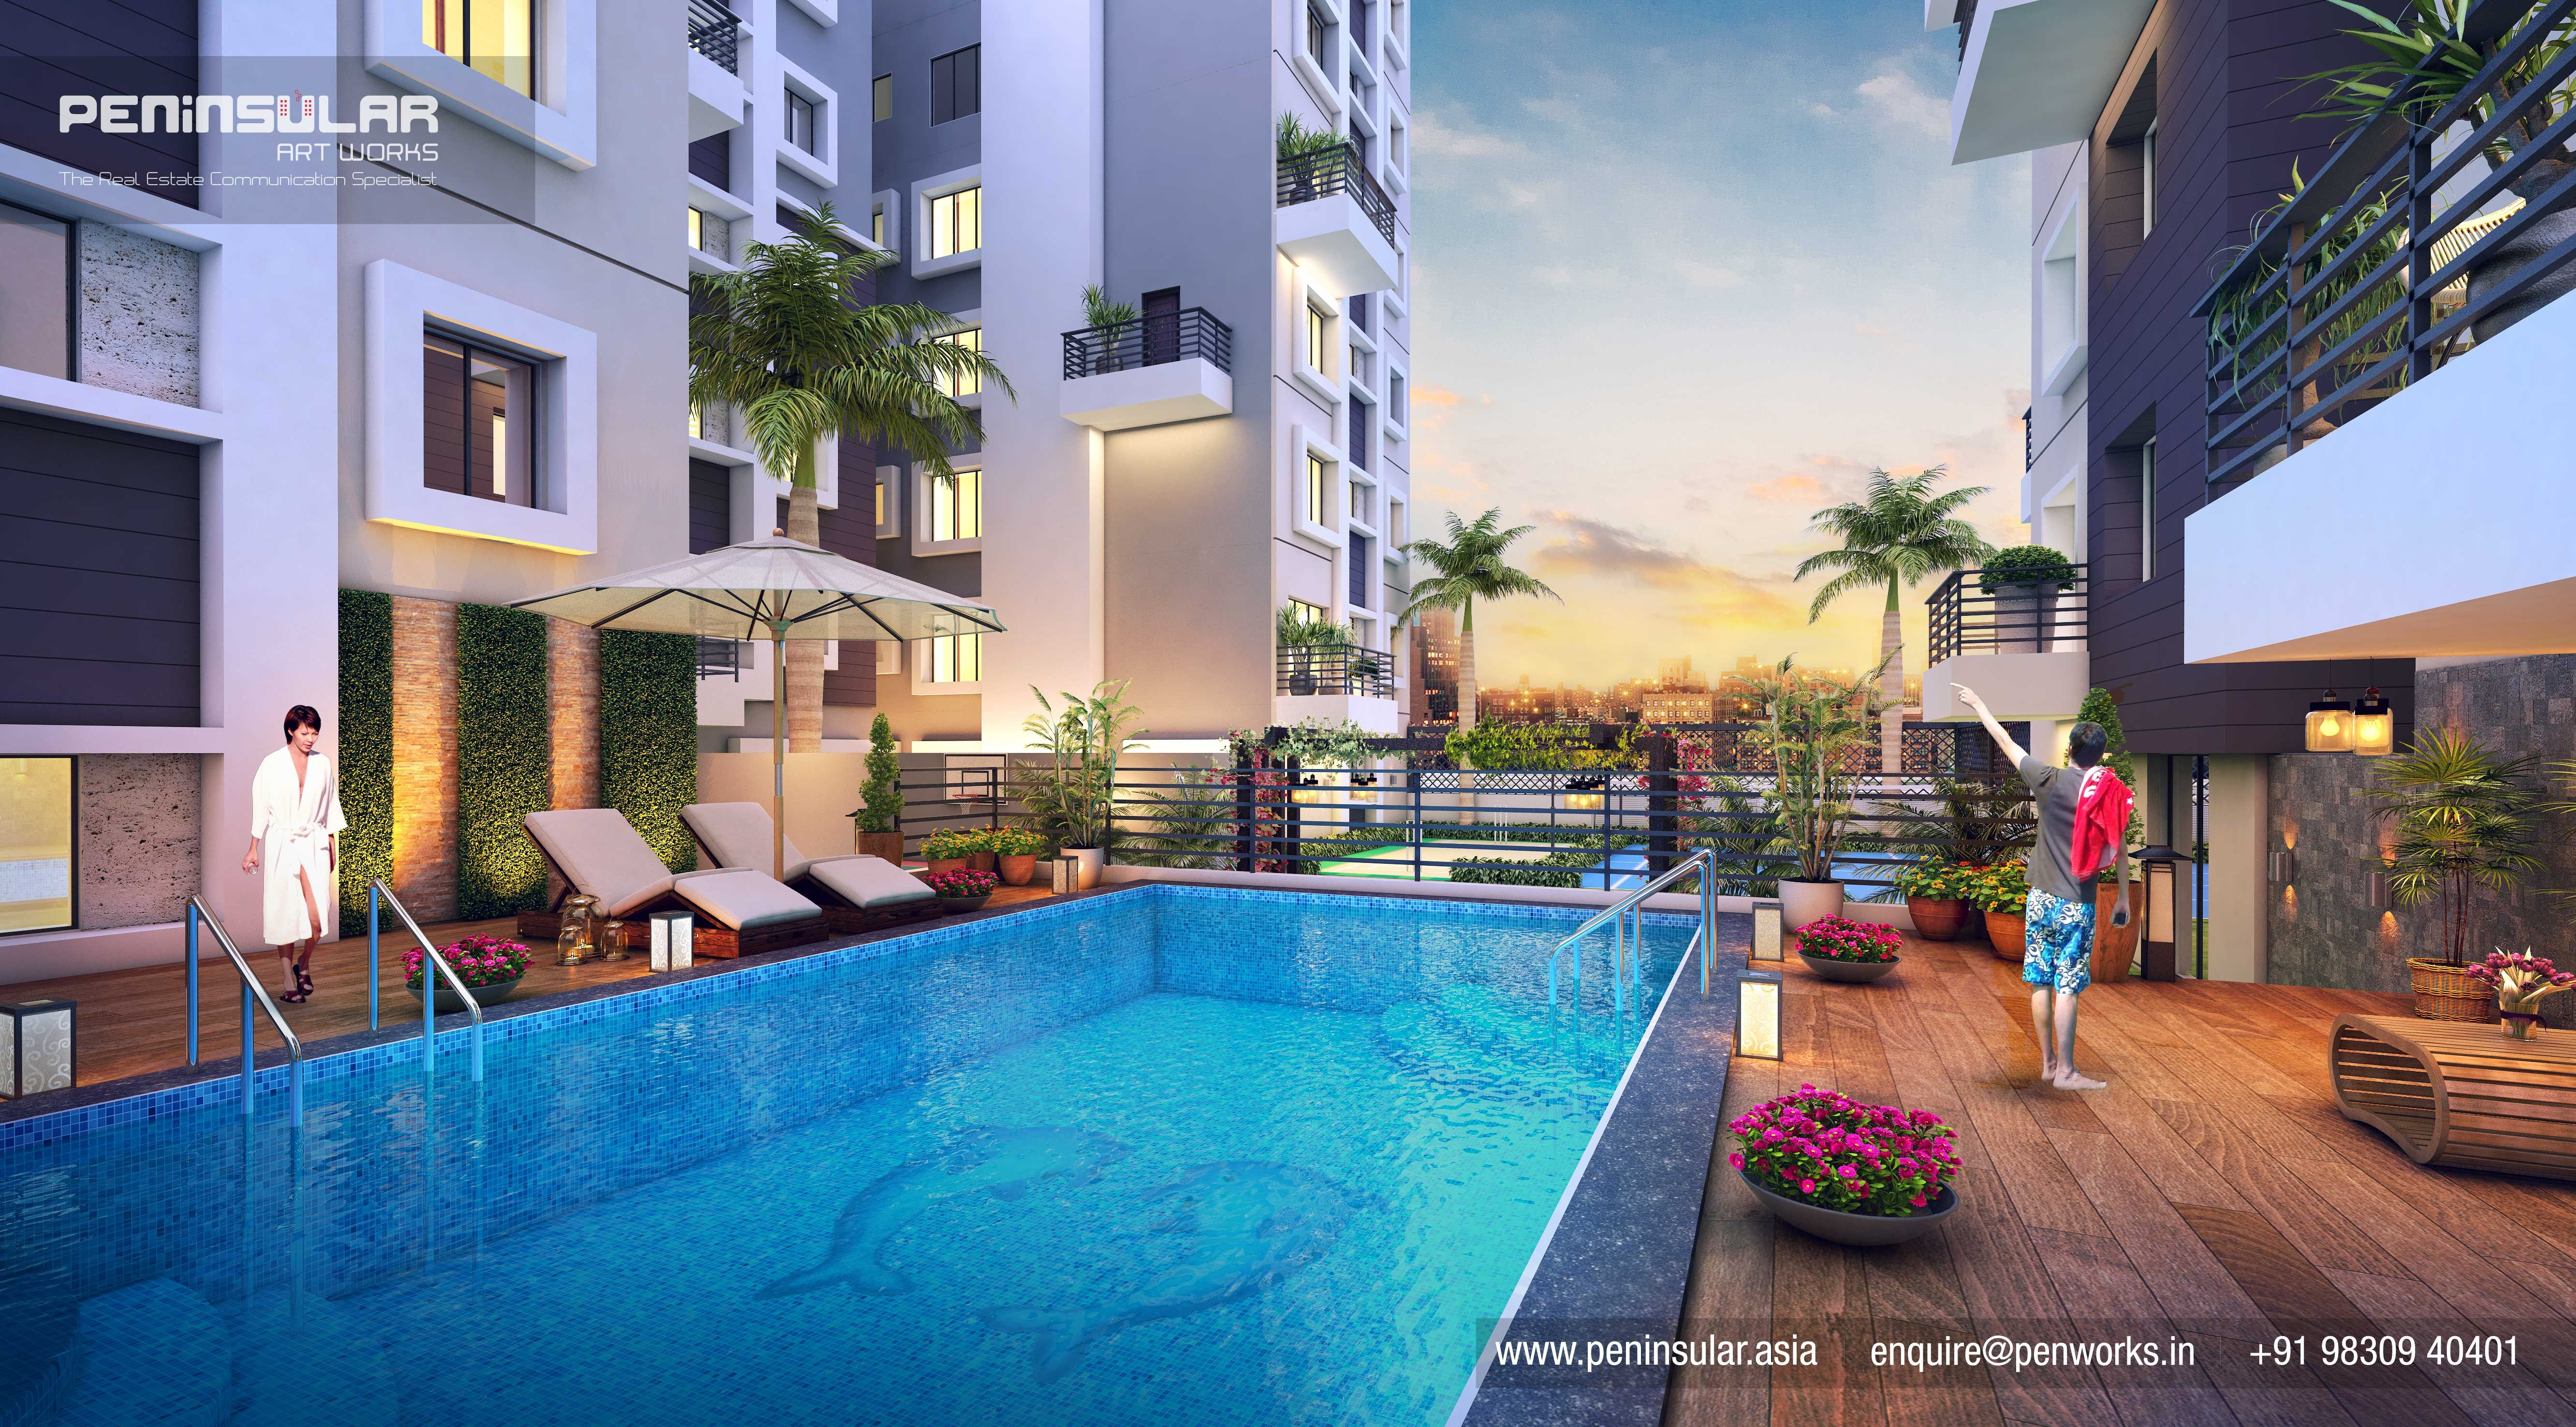 3d Rendering By Team Peninsular Art Works View Pool View